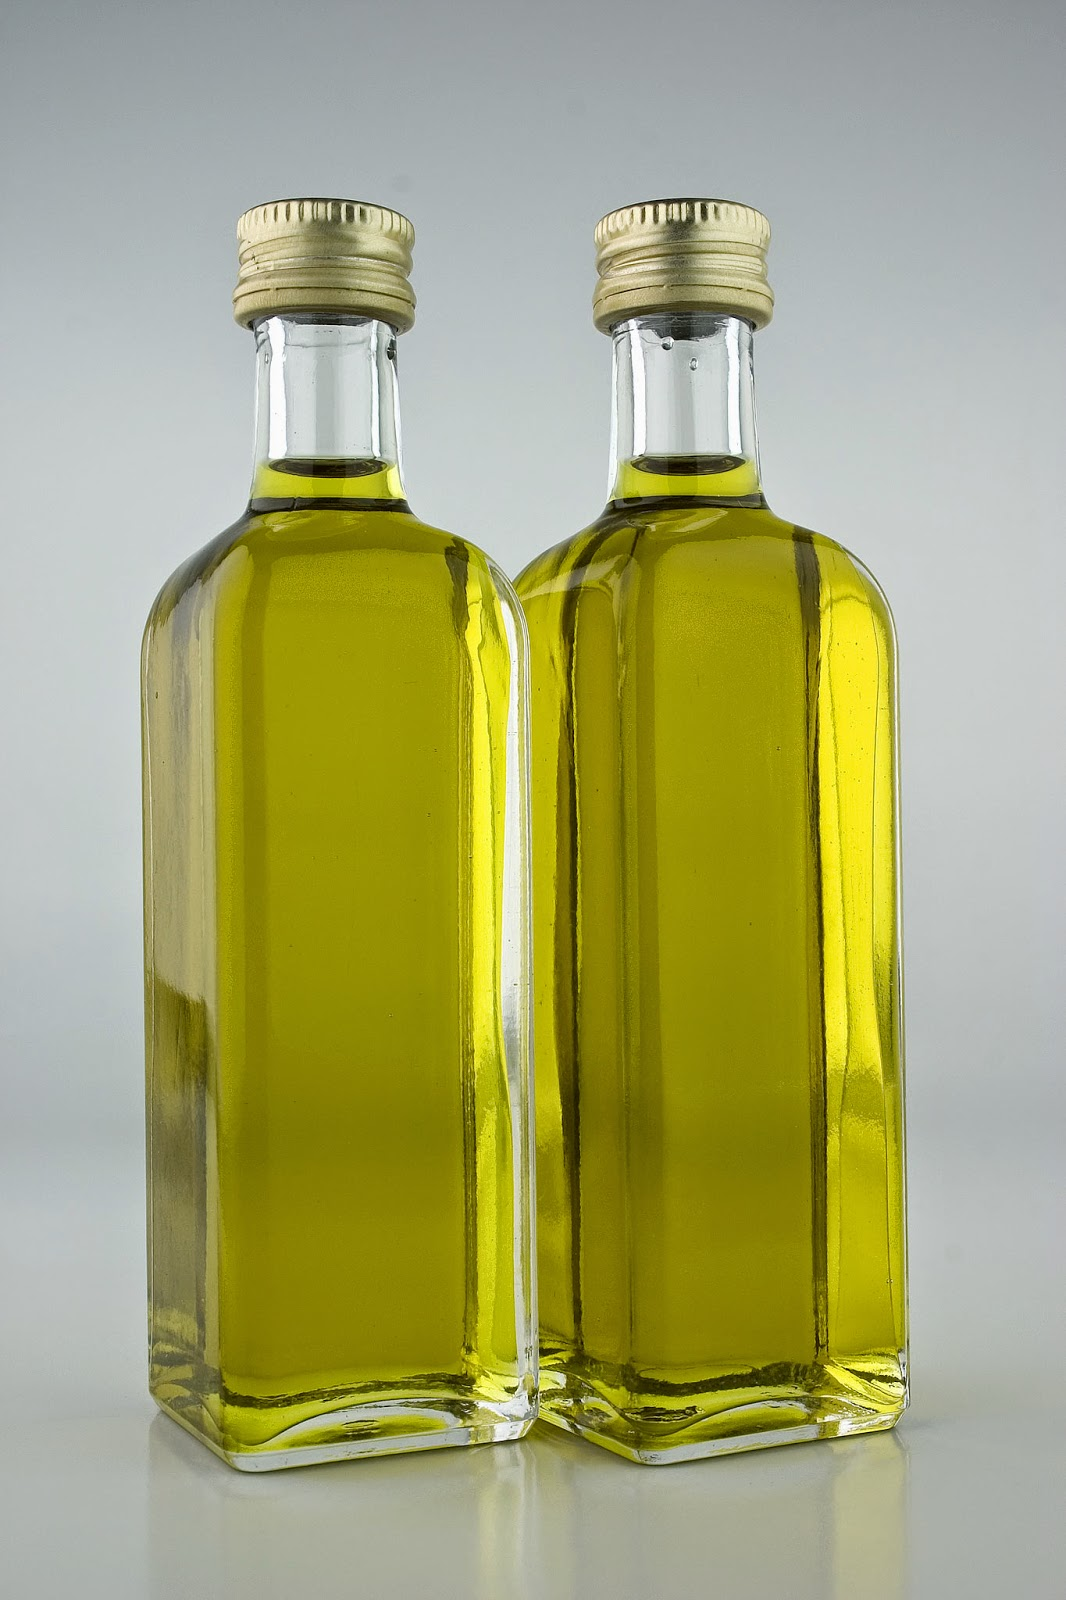 Store Olive Oil and keep it cool